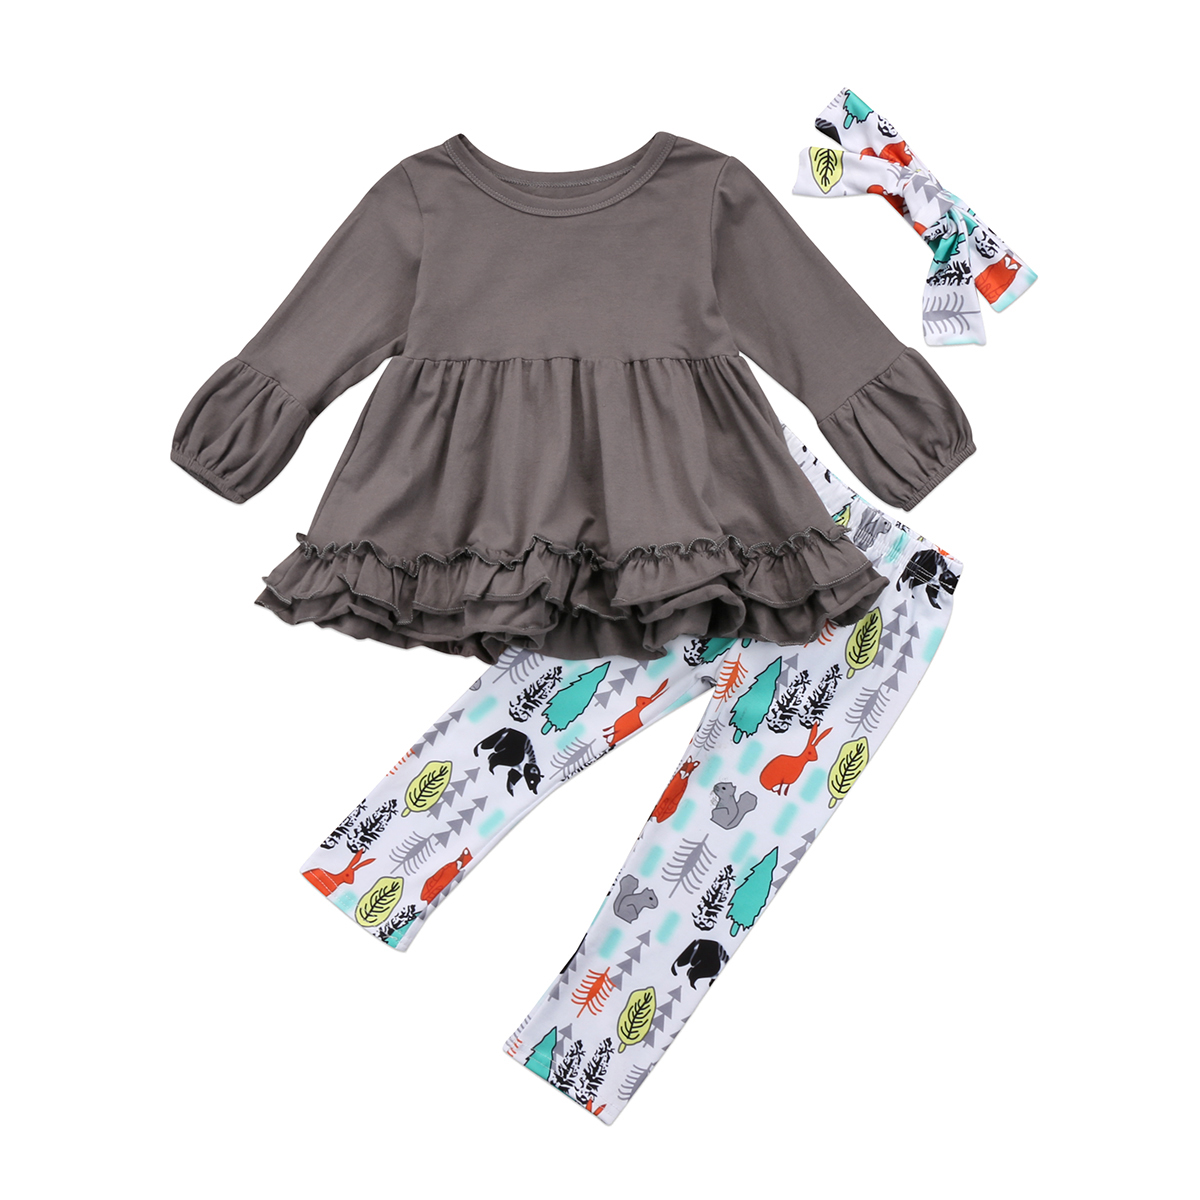 Pudcoco 2018 3Pcs Kids Girls Outfits Gray tunic ruffles Top Dress print Pants Leggings headband Set girls clothing for new year butterfly print halter tunic dress